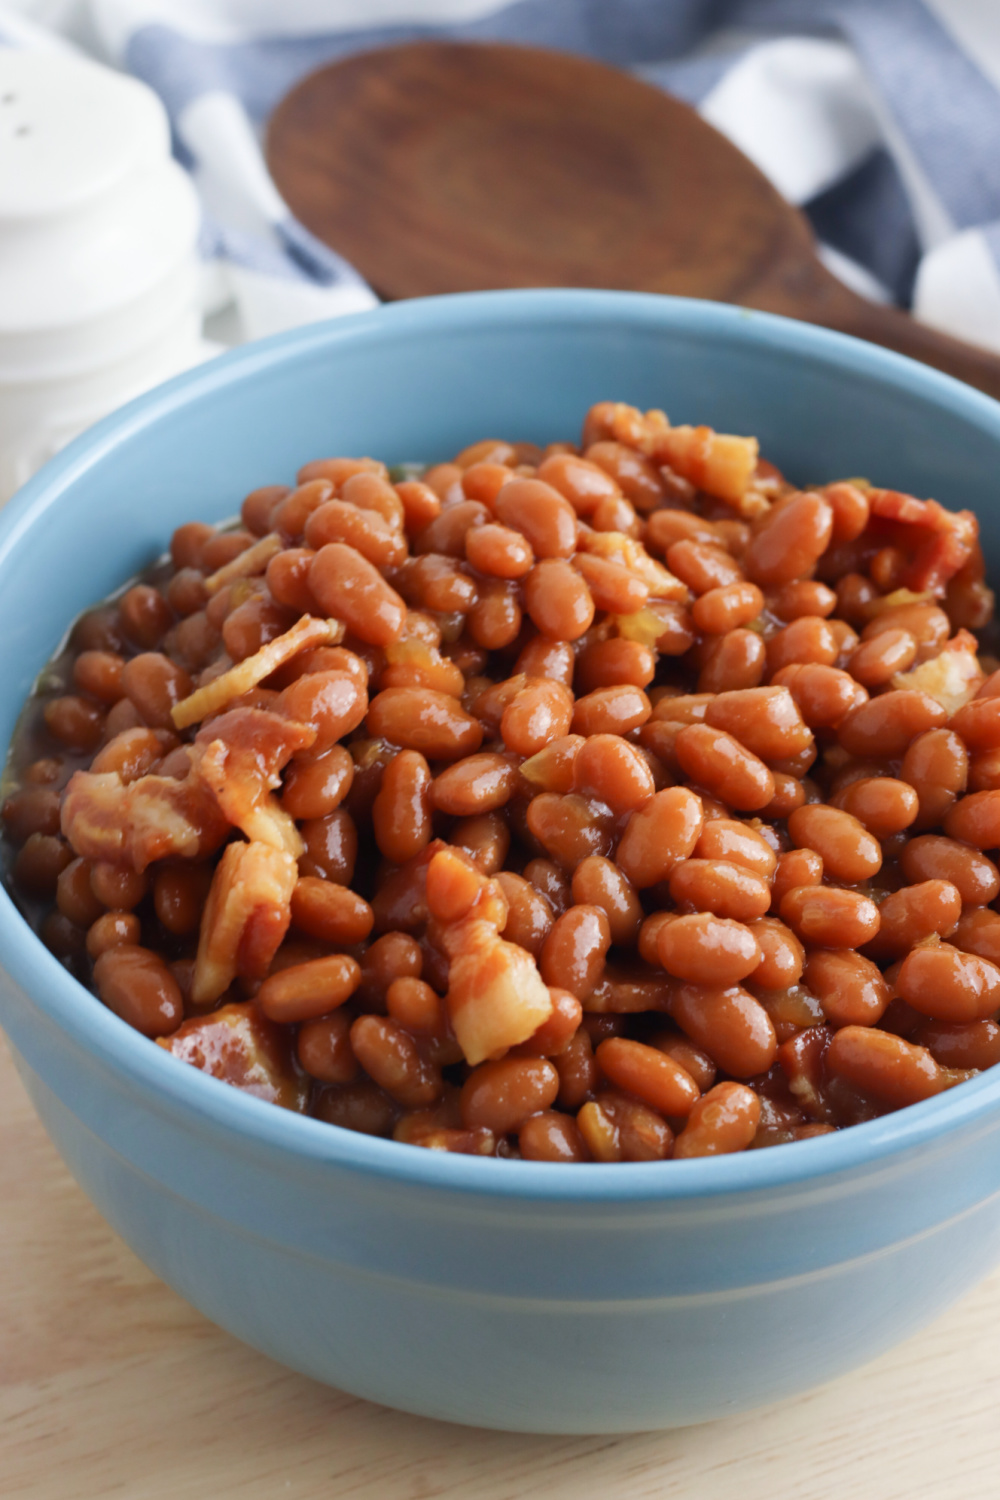 Brown sugar baked beans in a bowl